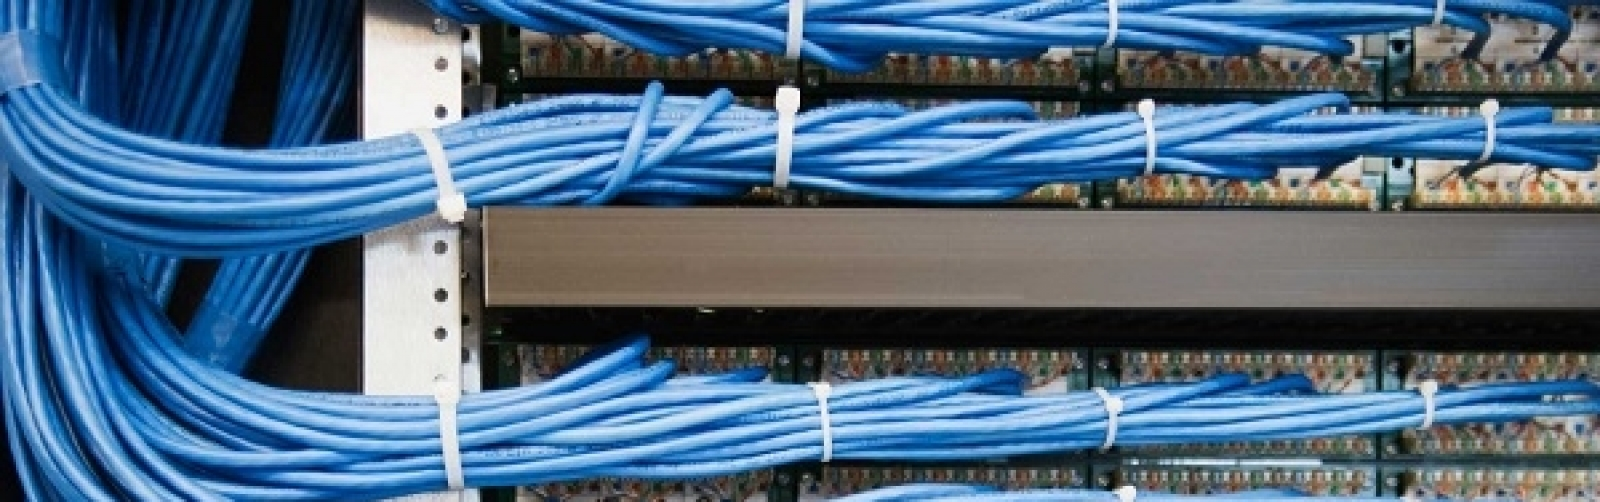 Structured Network Cabling, Network Cabling, Data Center ... on